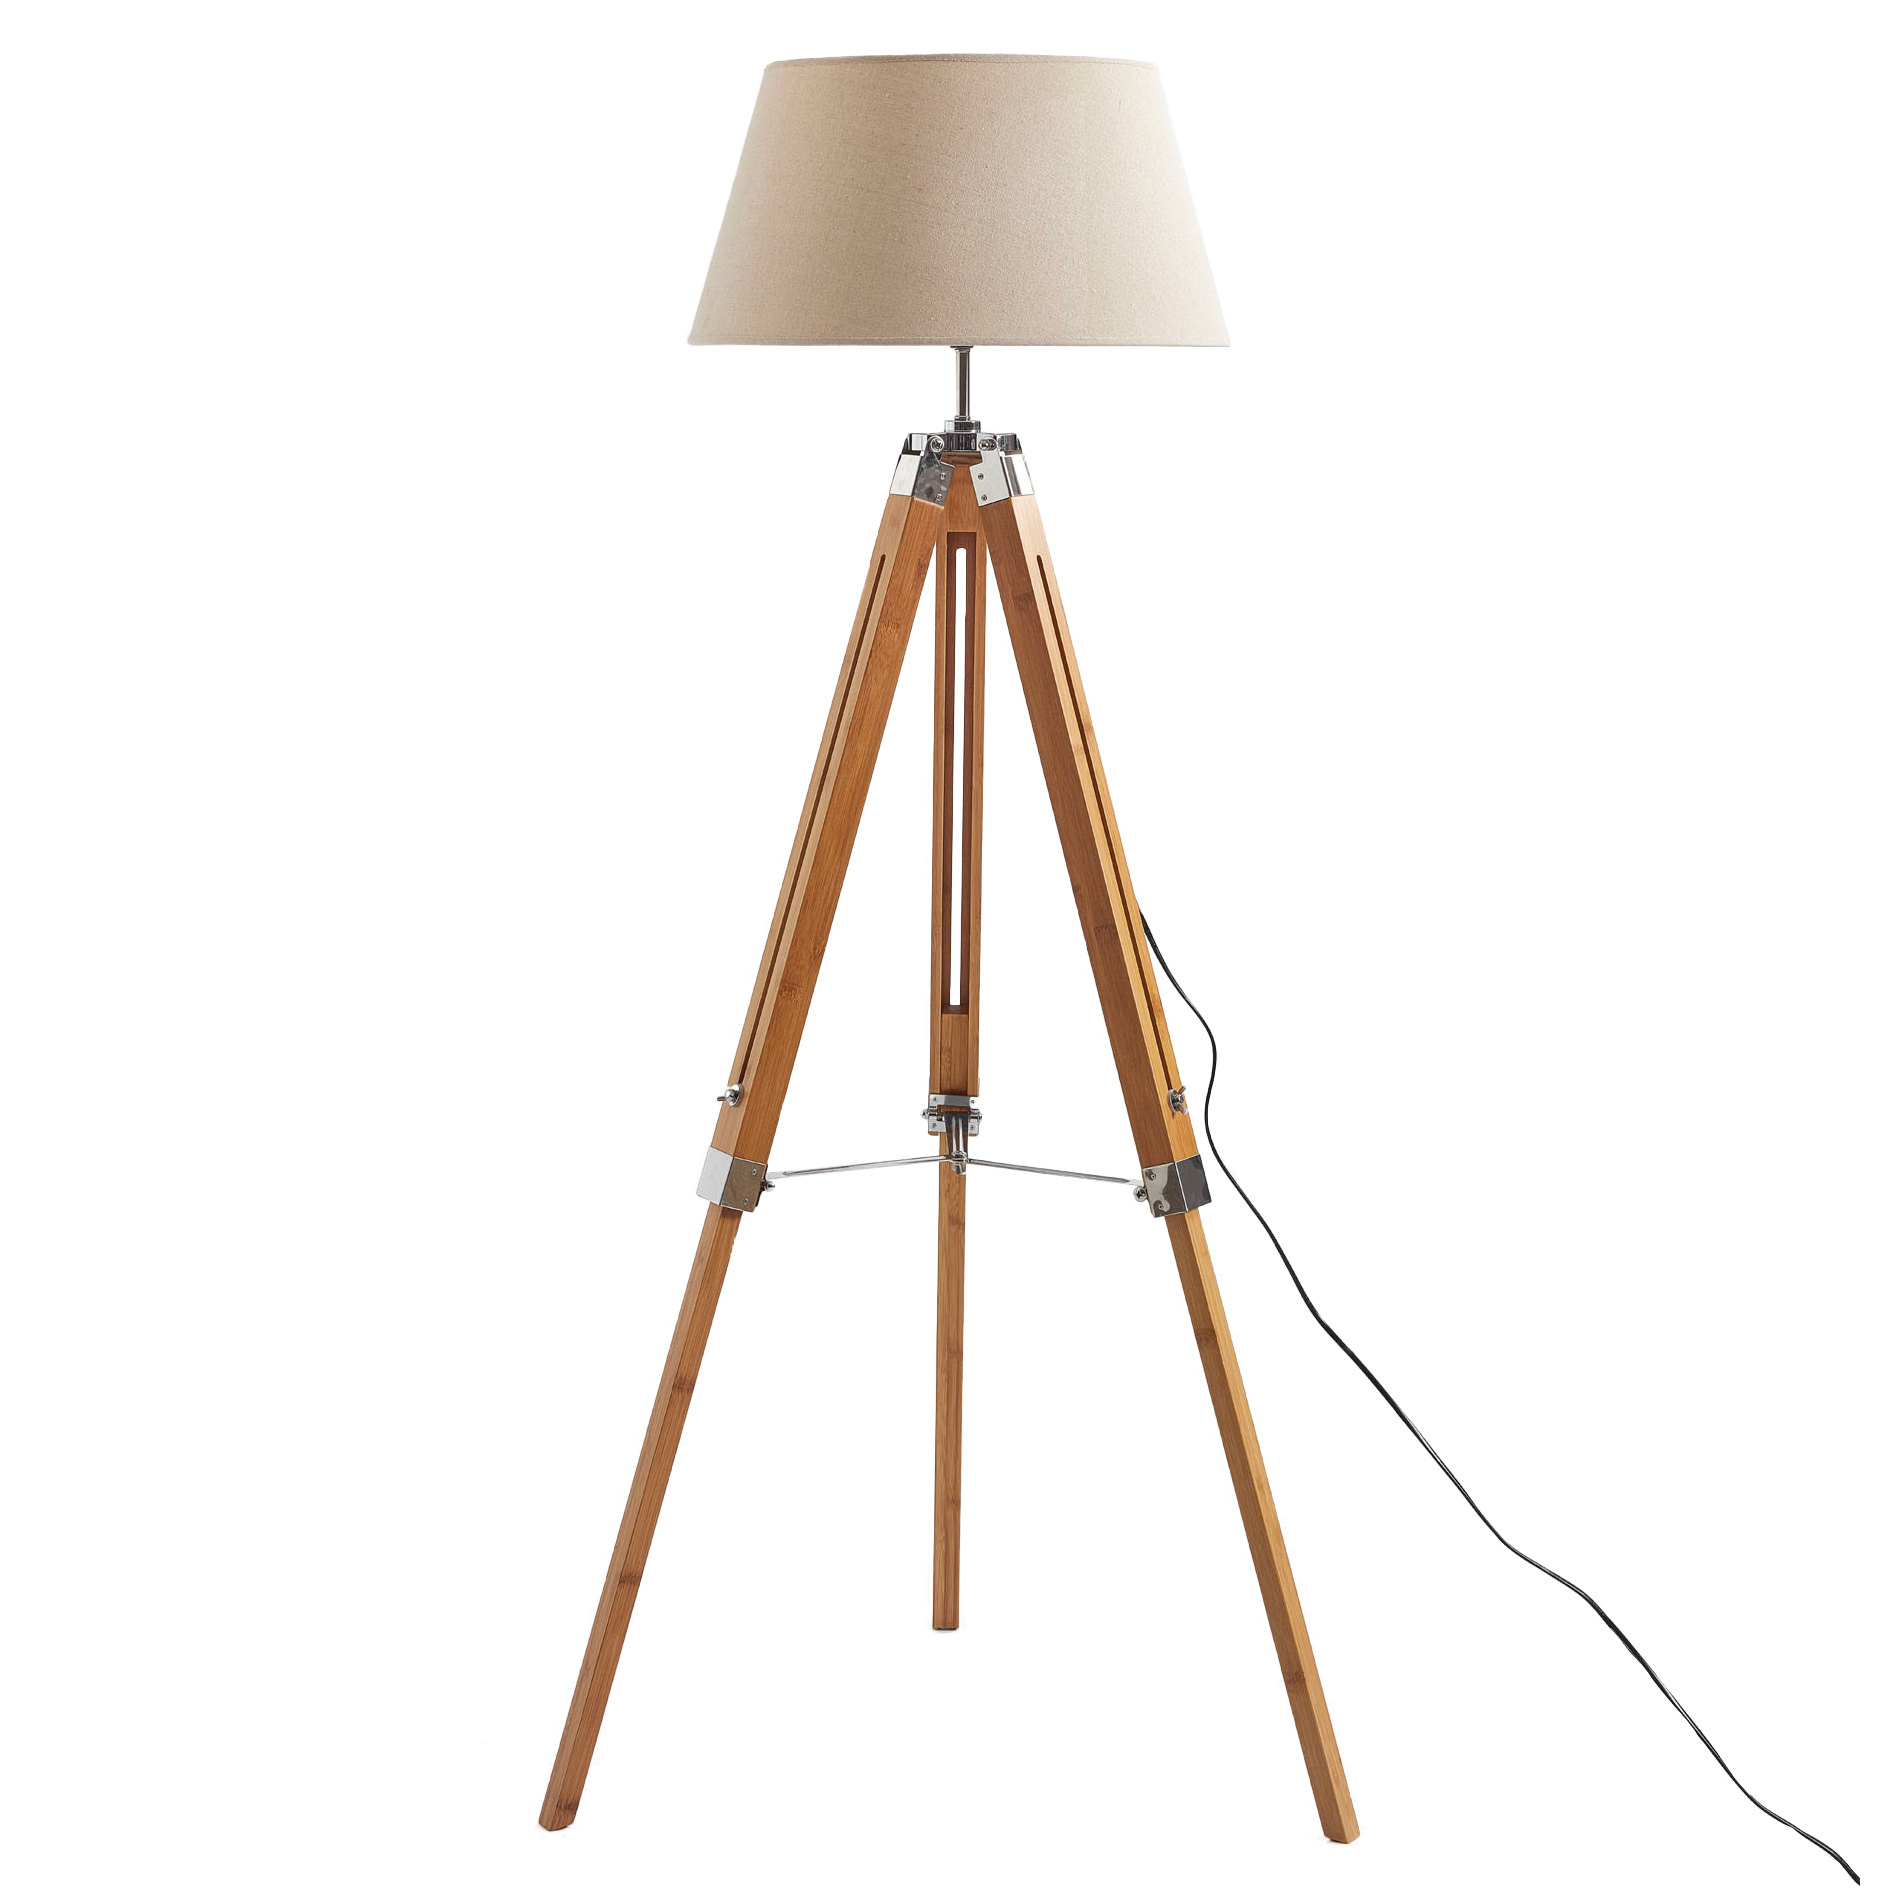 tripod lamps lamp silver of large standing grey wooden decorating for small dark size floor full shelves room with